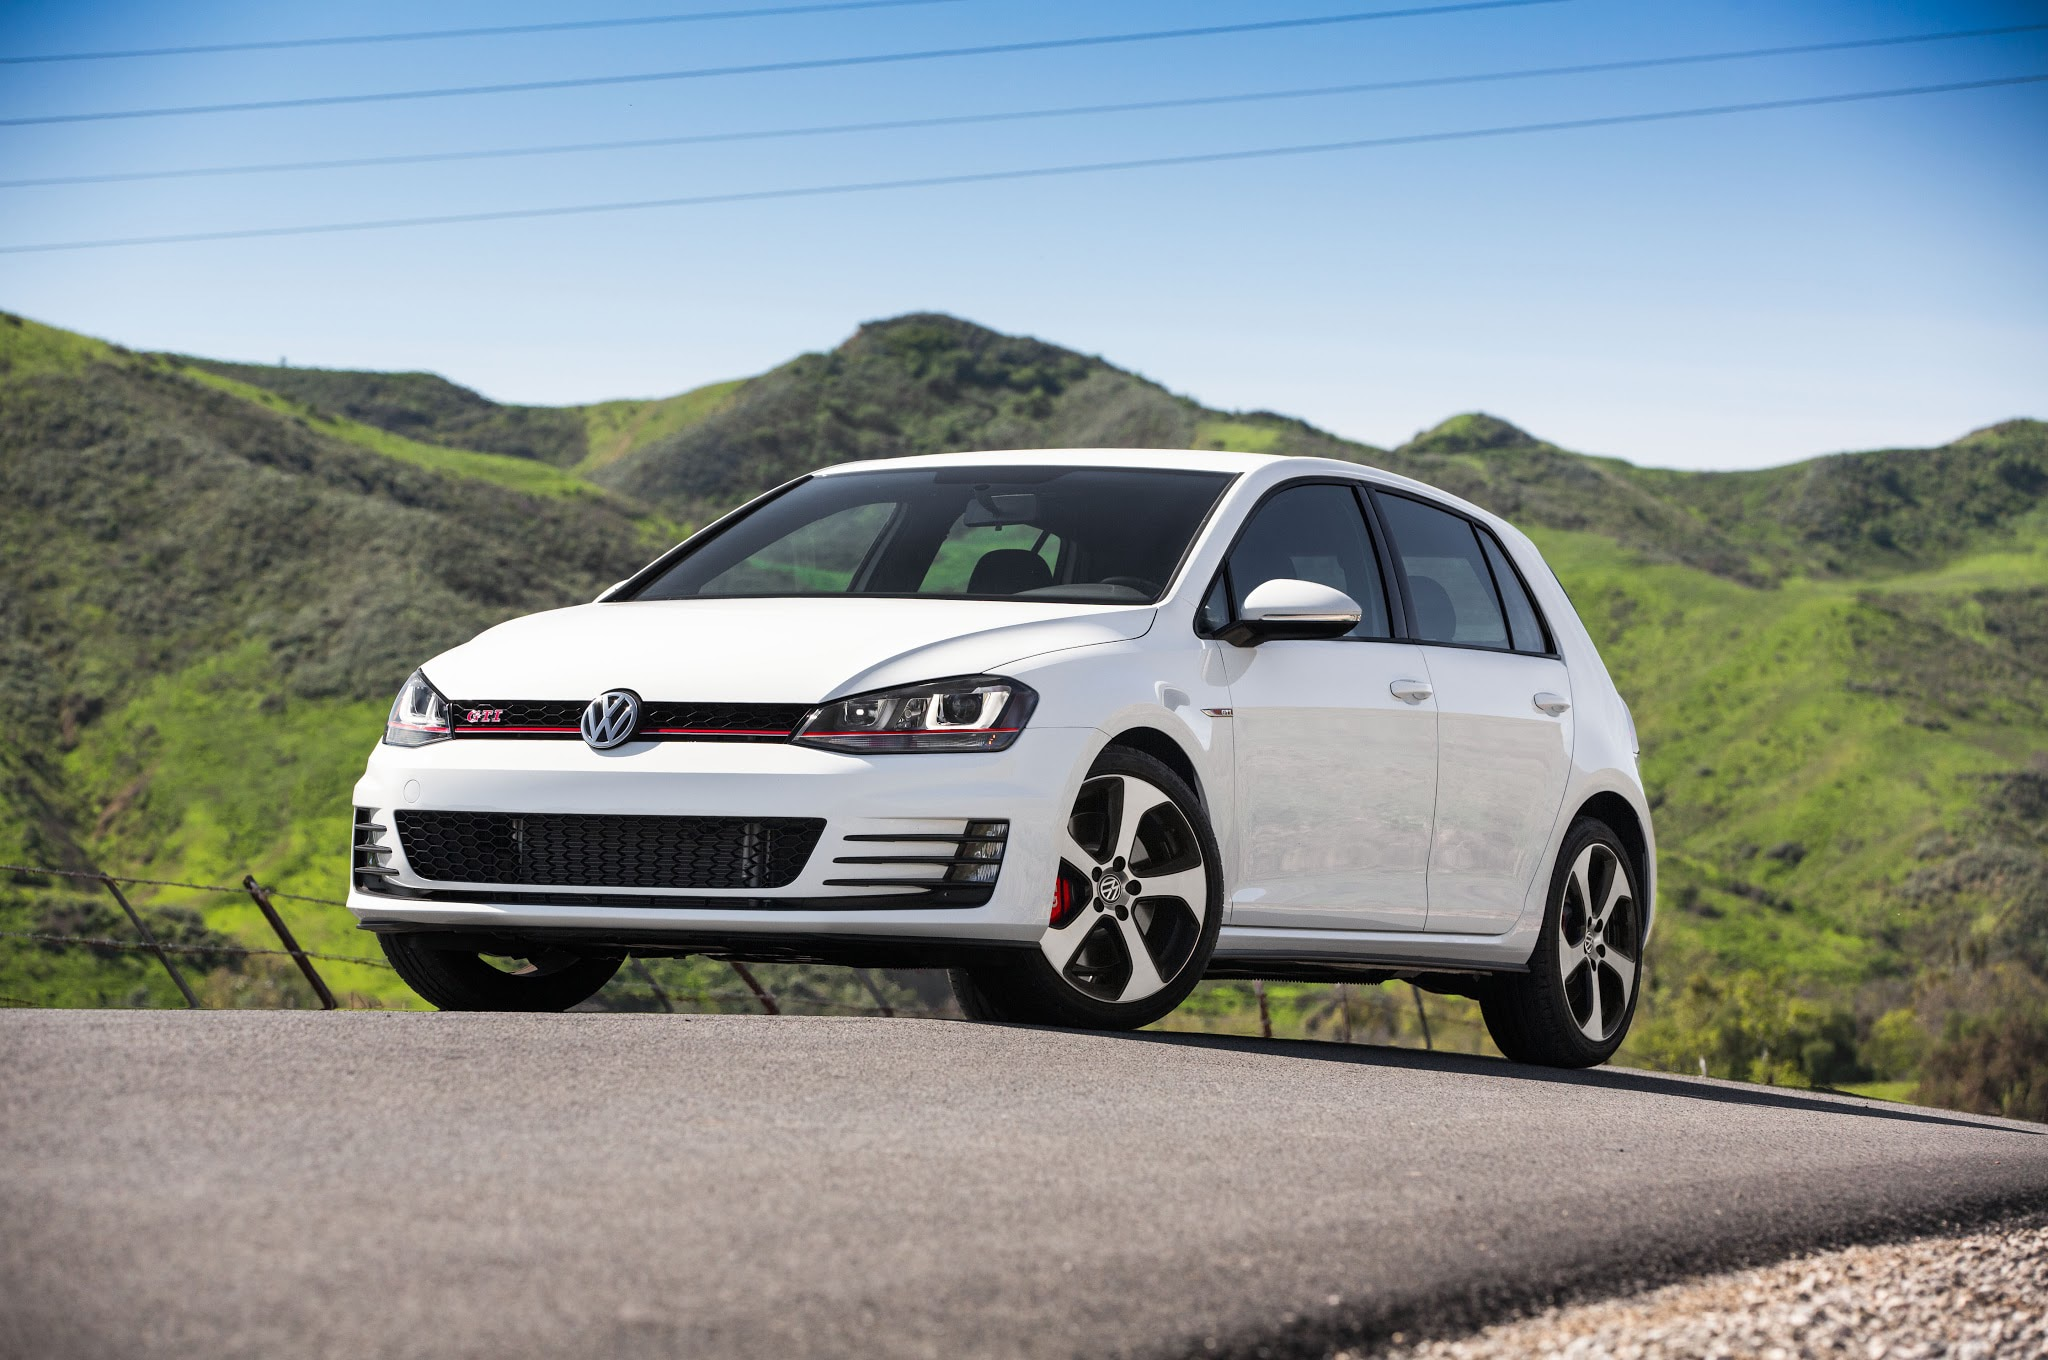 2015 volkswagen golf gti manual or dsg. Black Bedroom Furniture Sets. Home Design Ideas